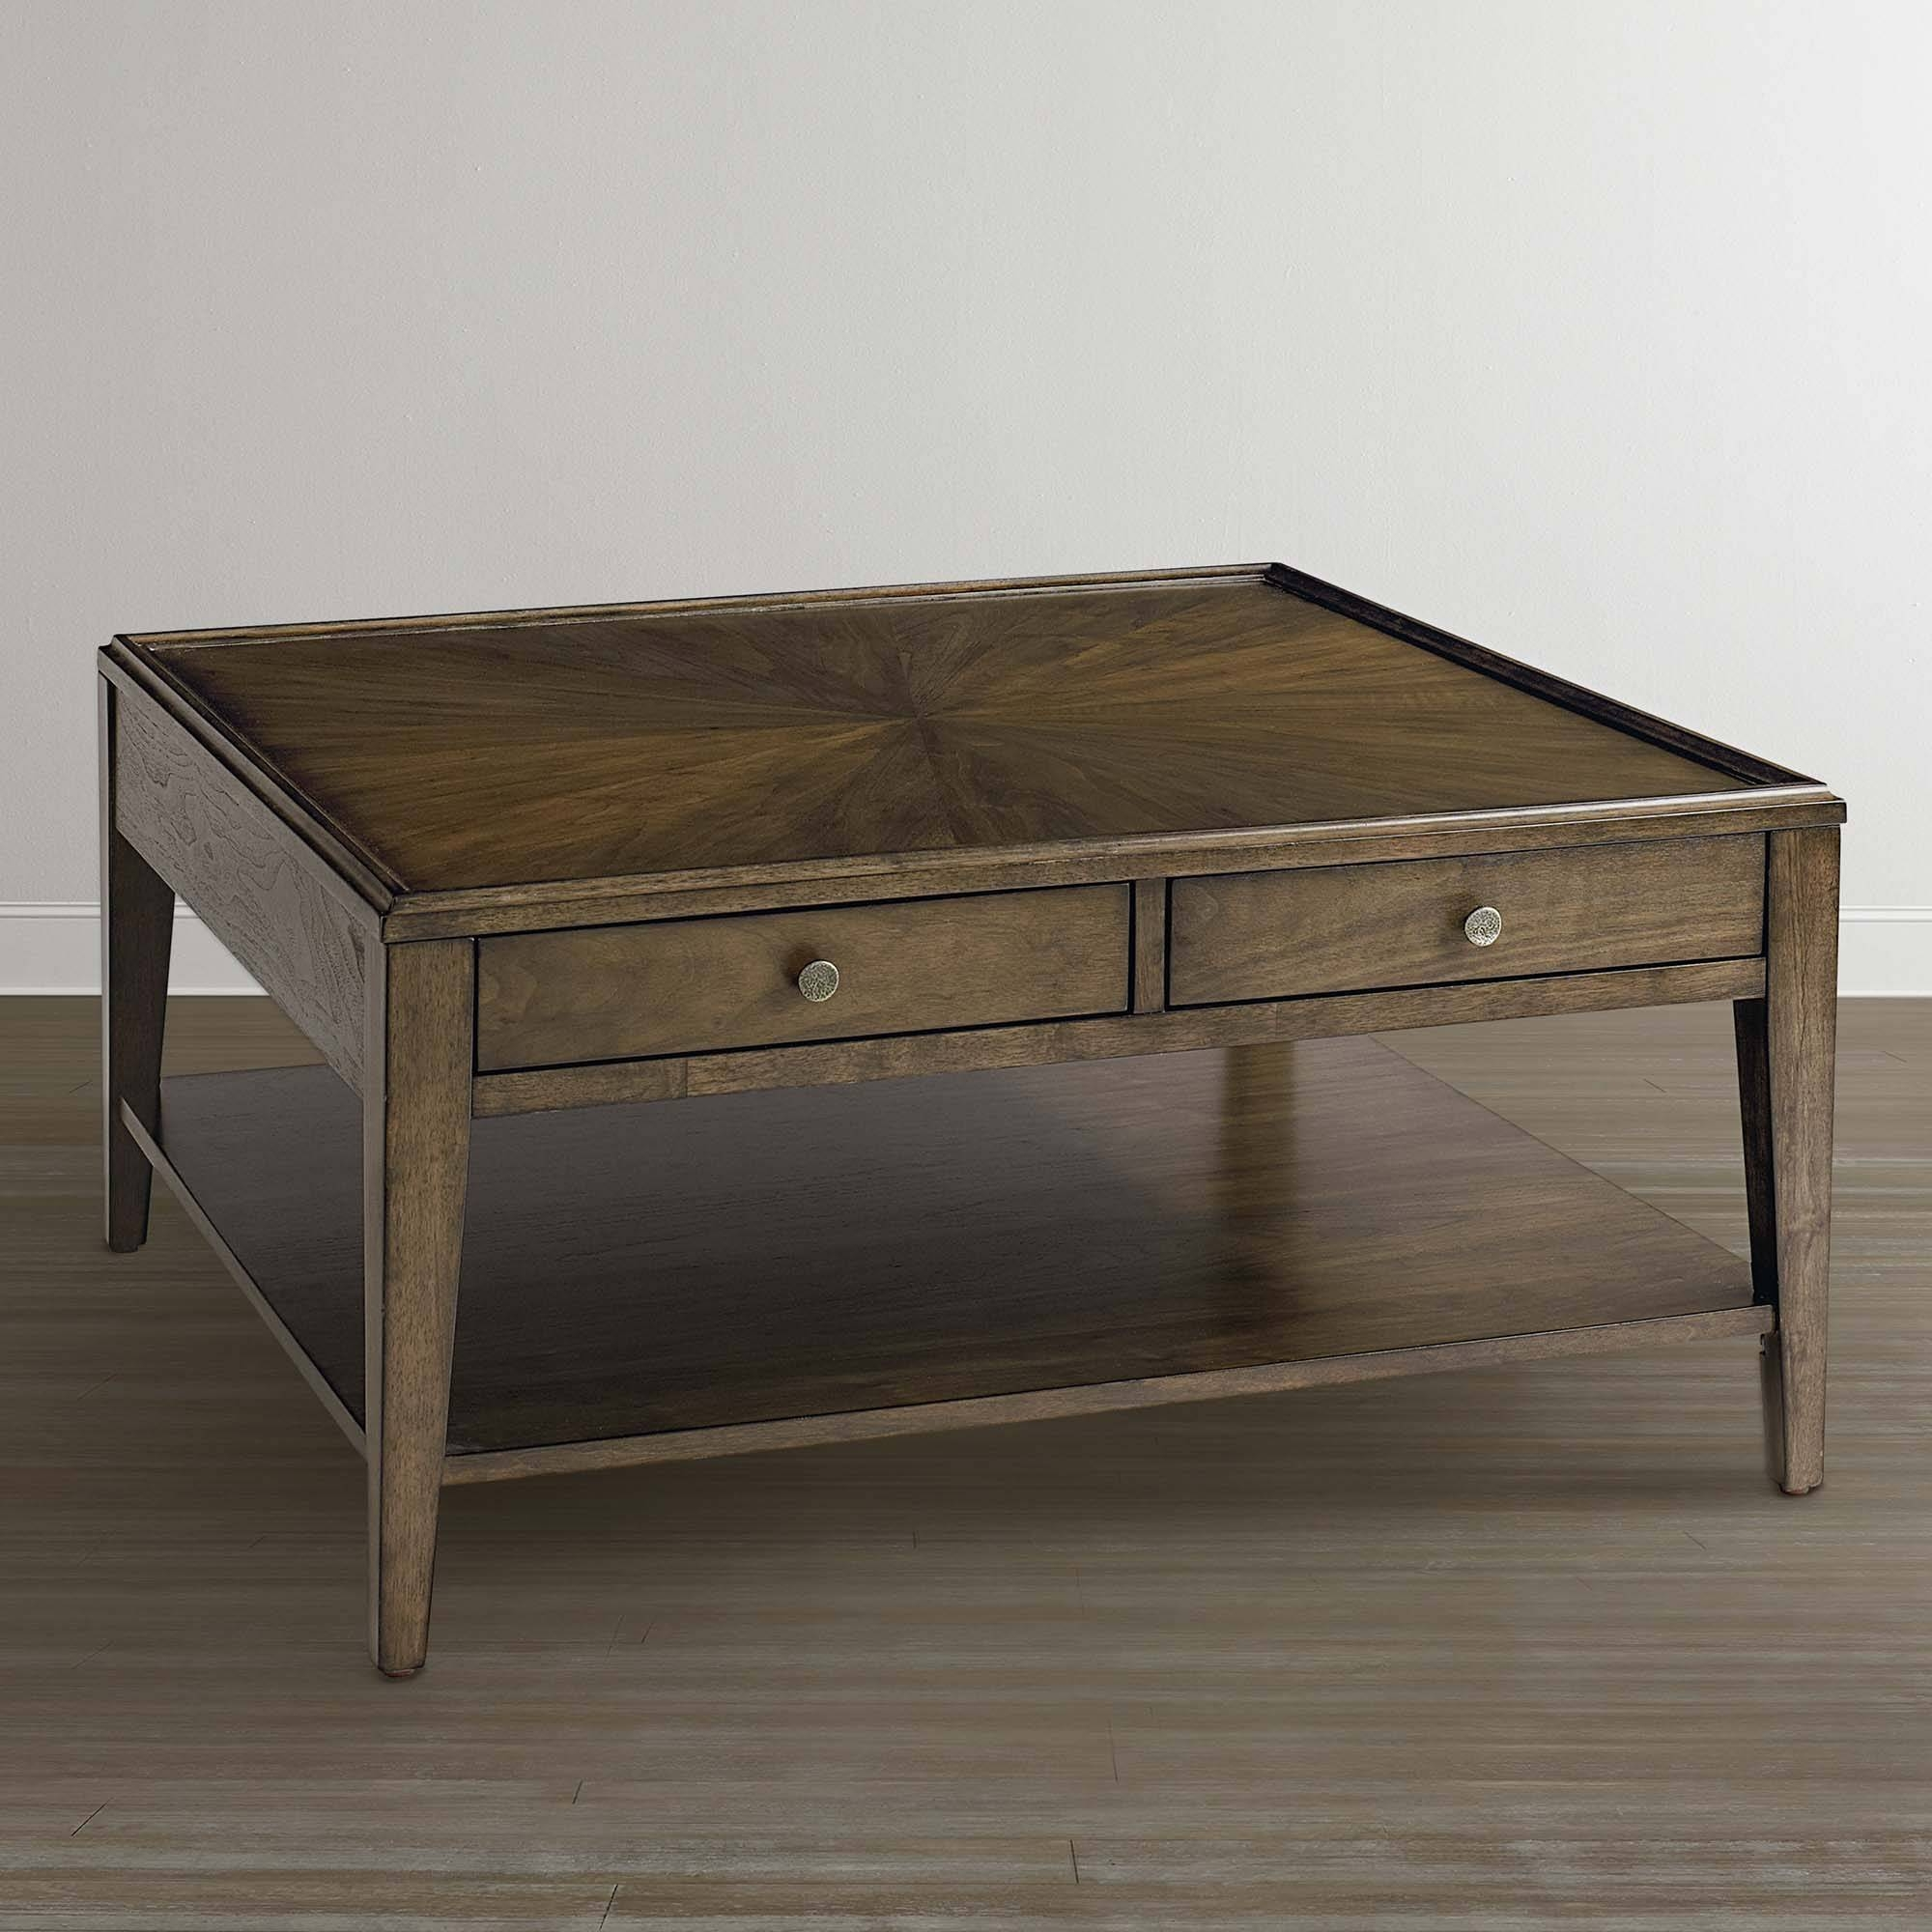 The Best Extra Rustic Coffee Tables